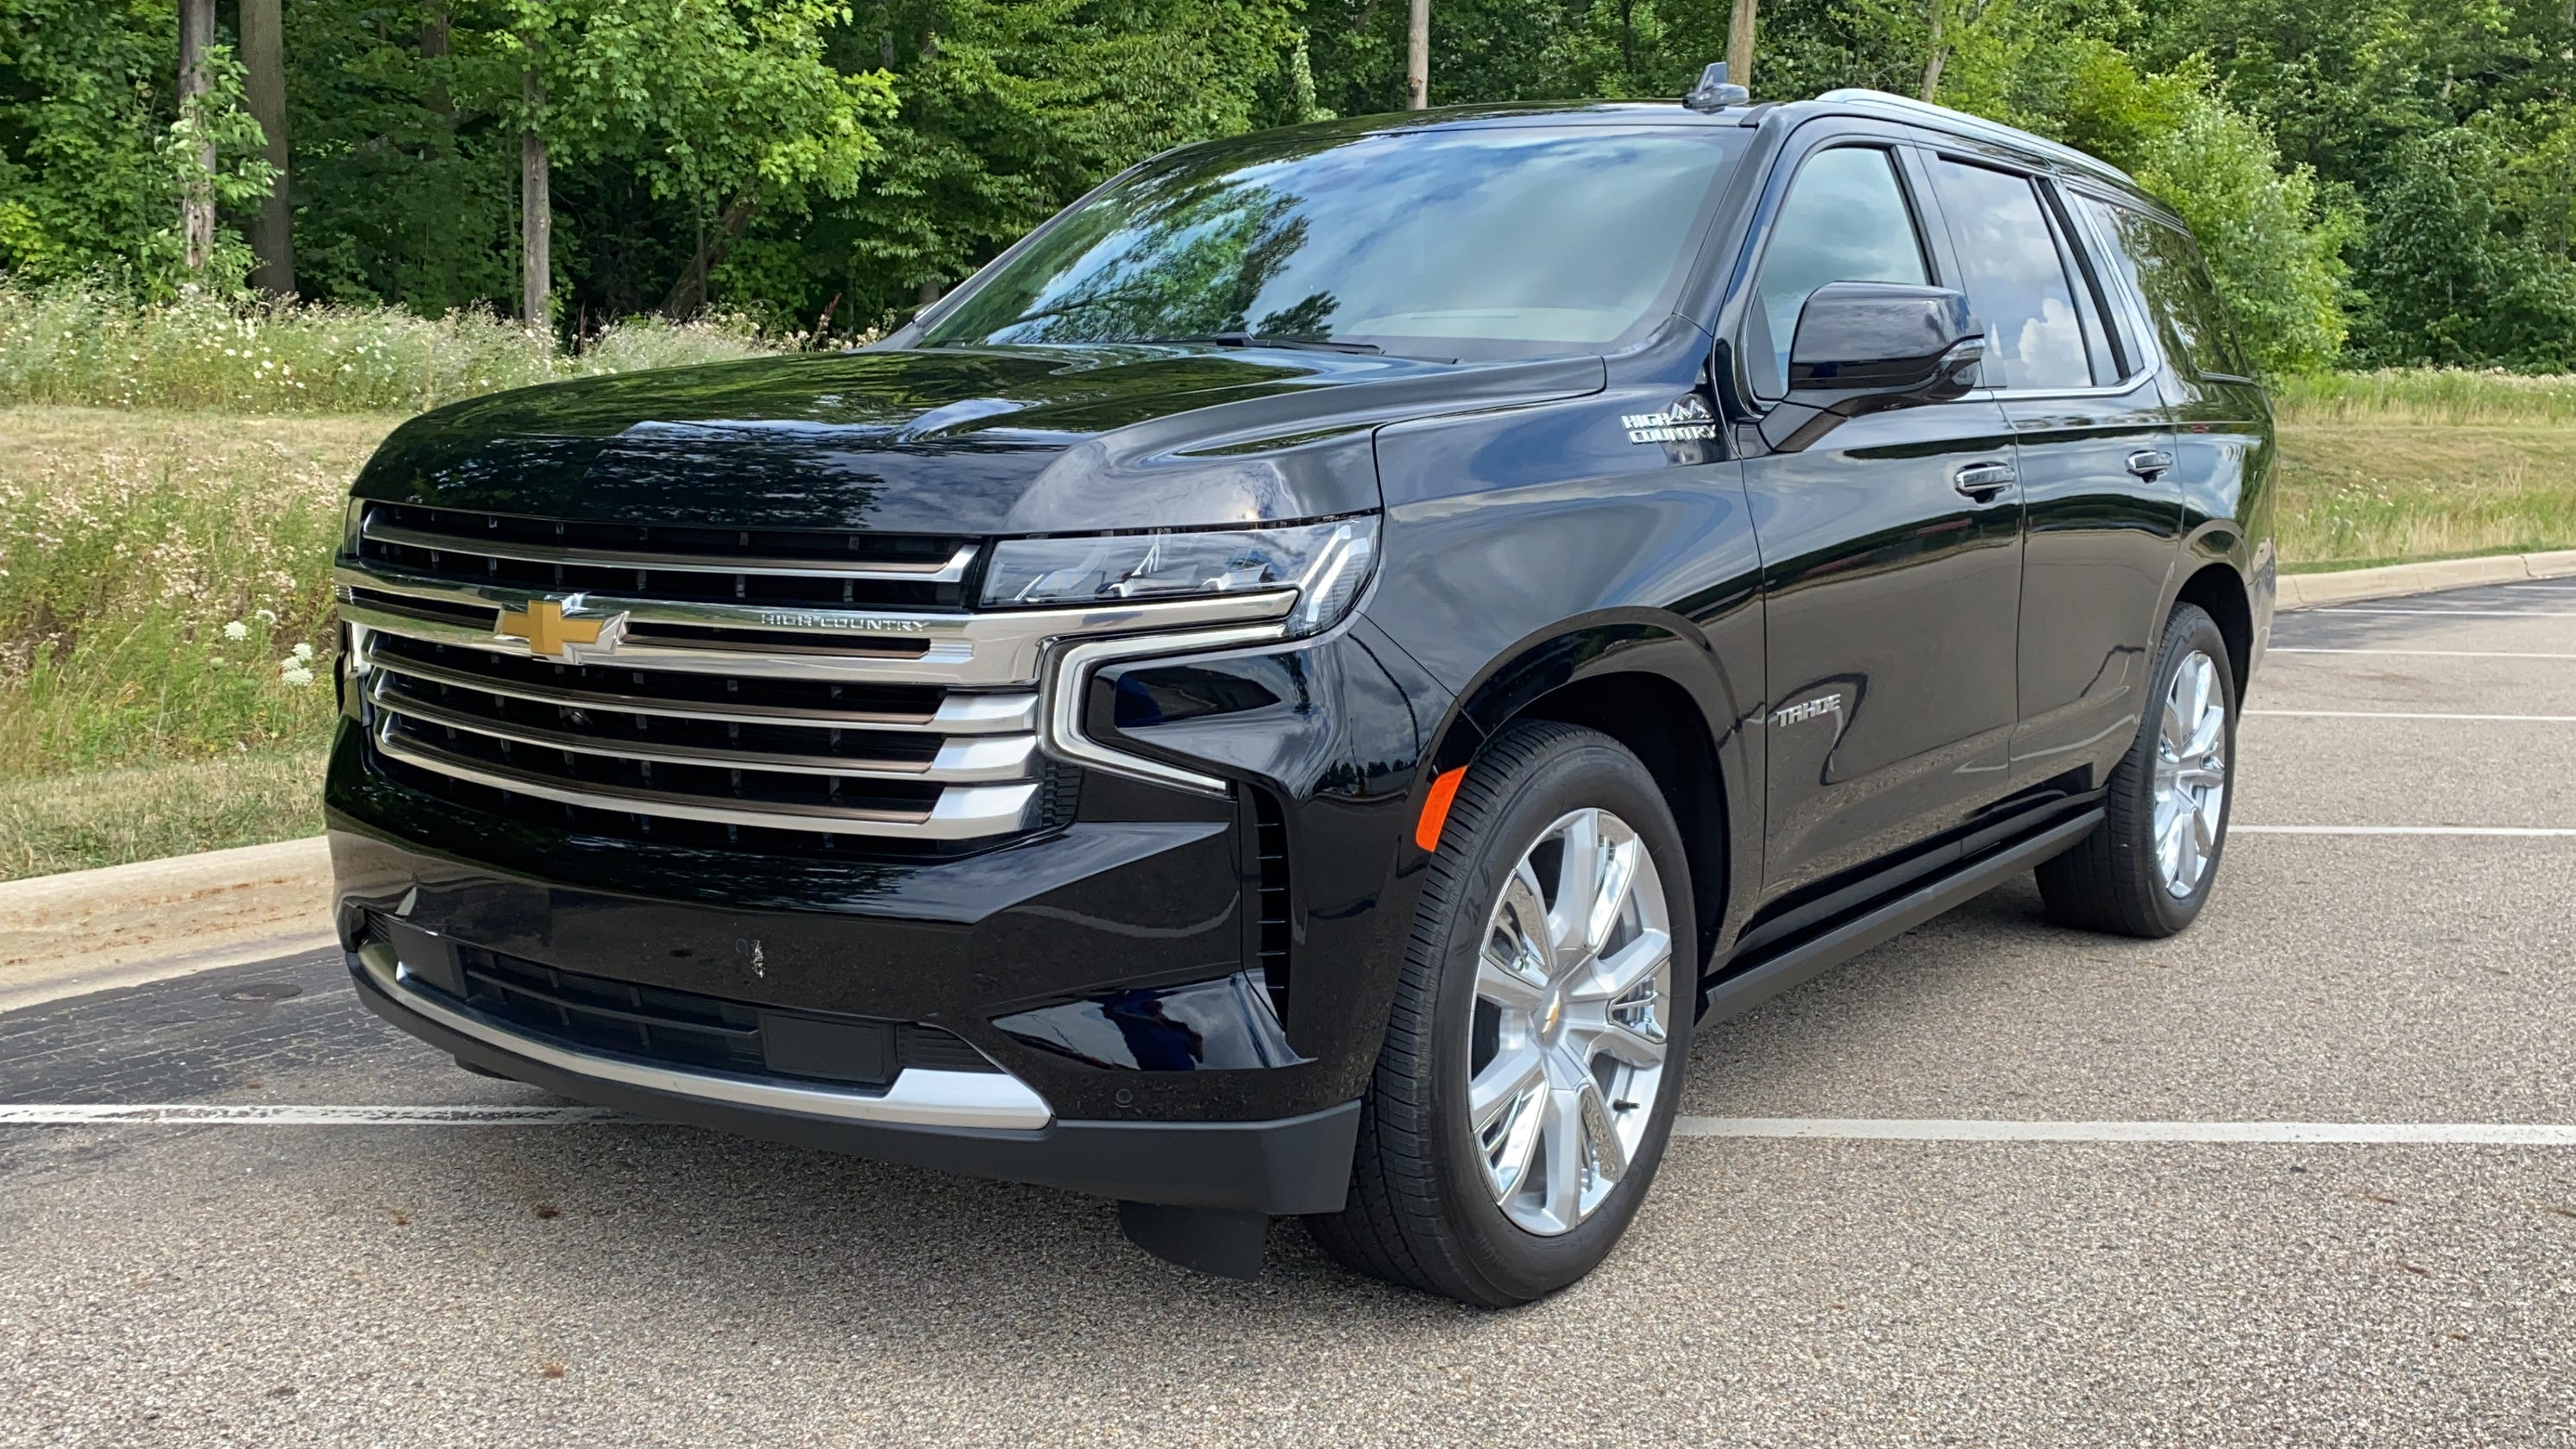 This is the big SUV to beat